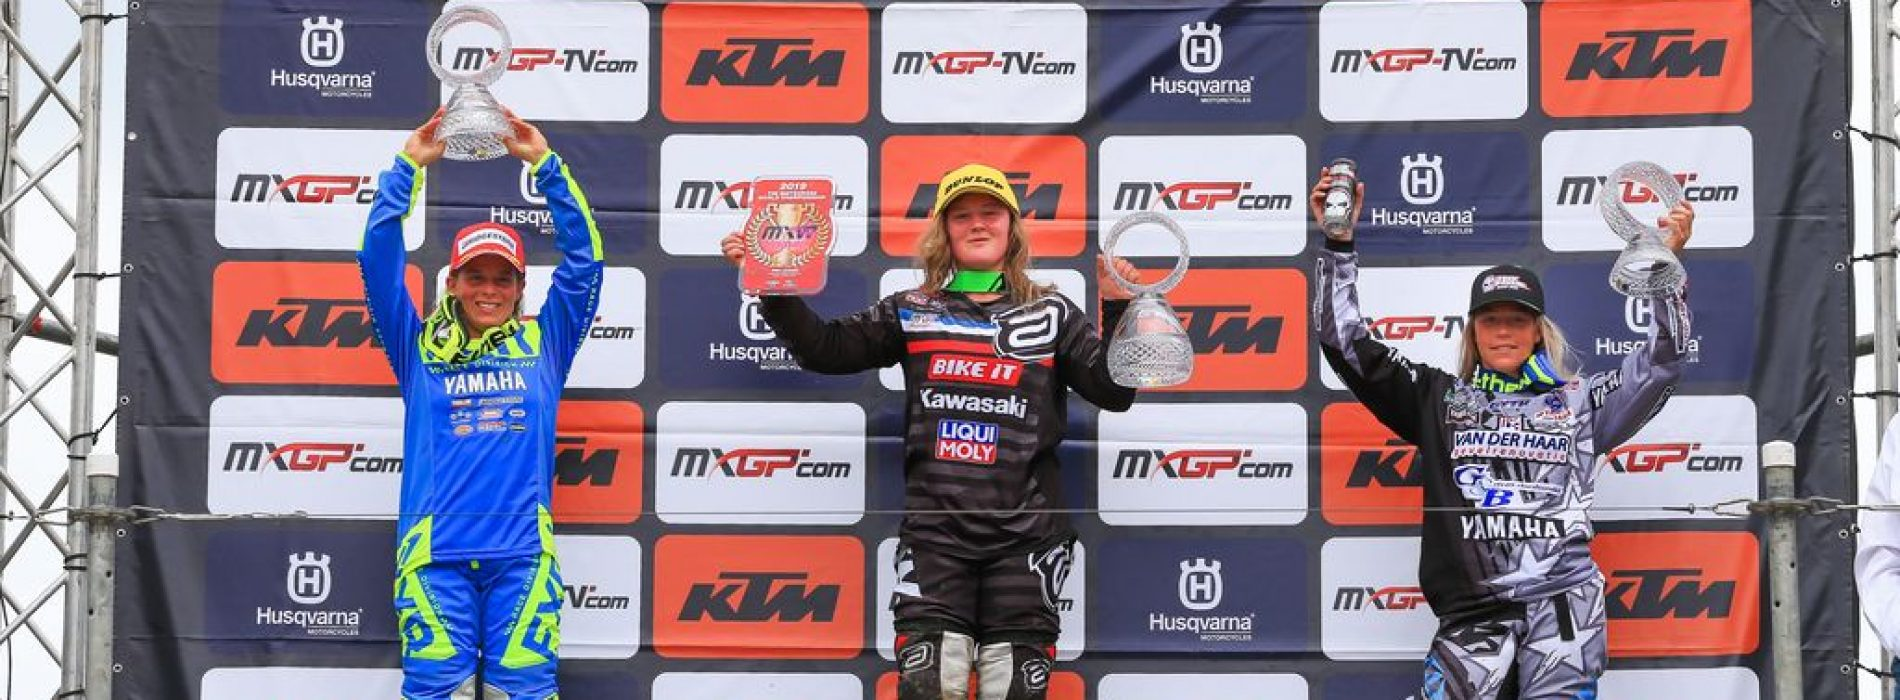 Courtney Duncan racing past 10 years- from NZ-to USA-to Europe